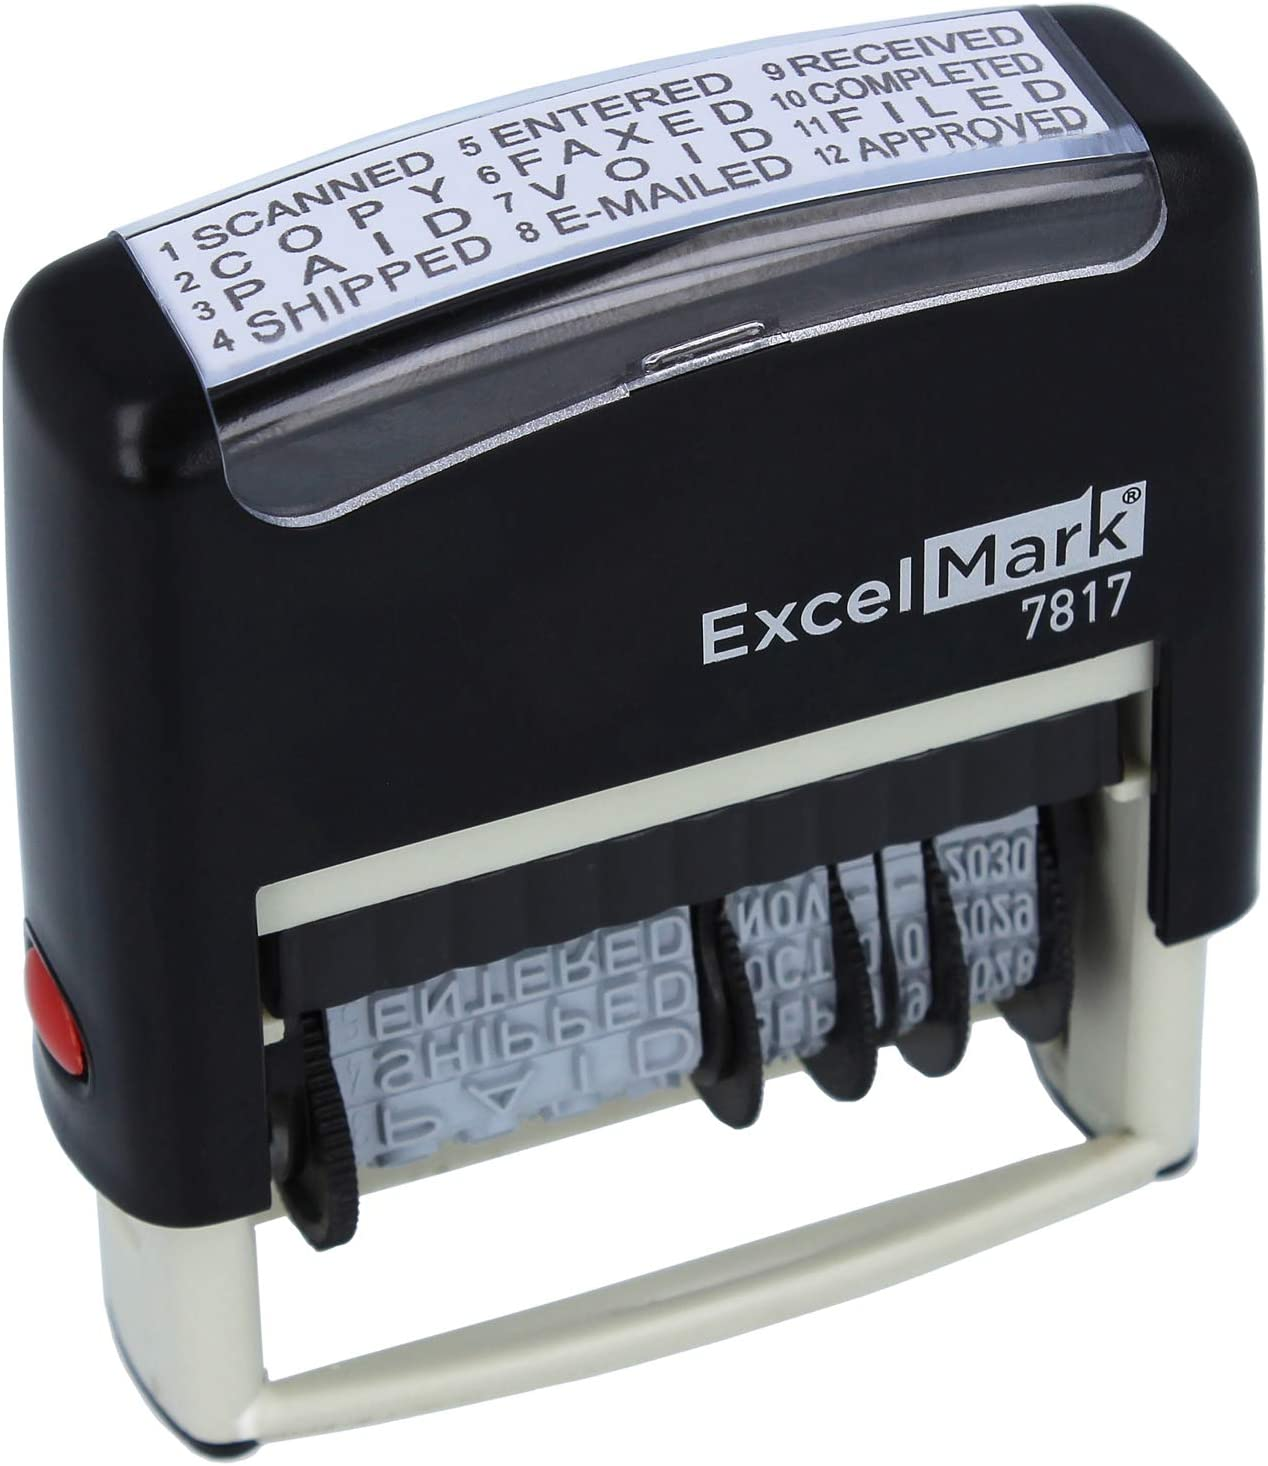 ExcelMark 12 Phrase Self-Inking Date Stamp - 2